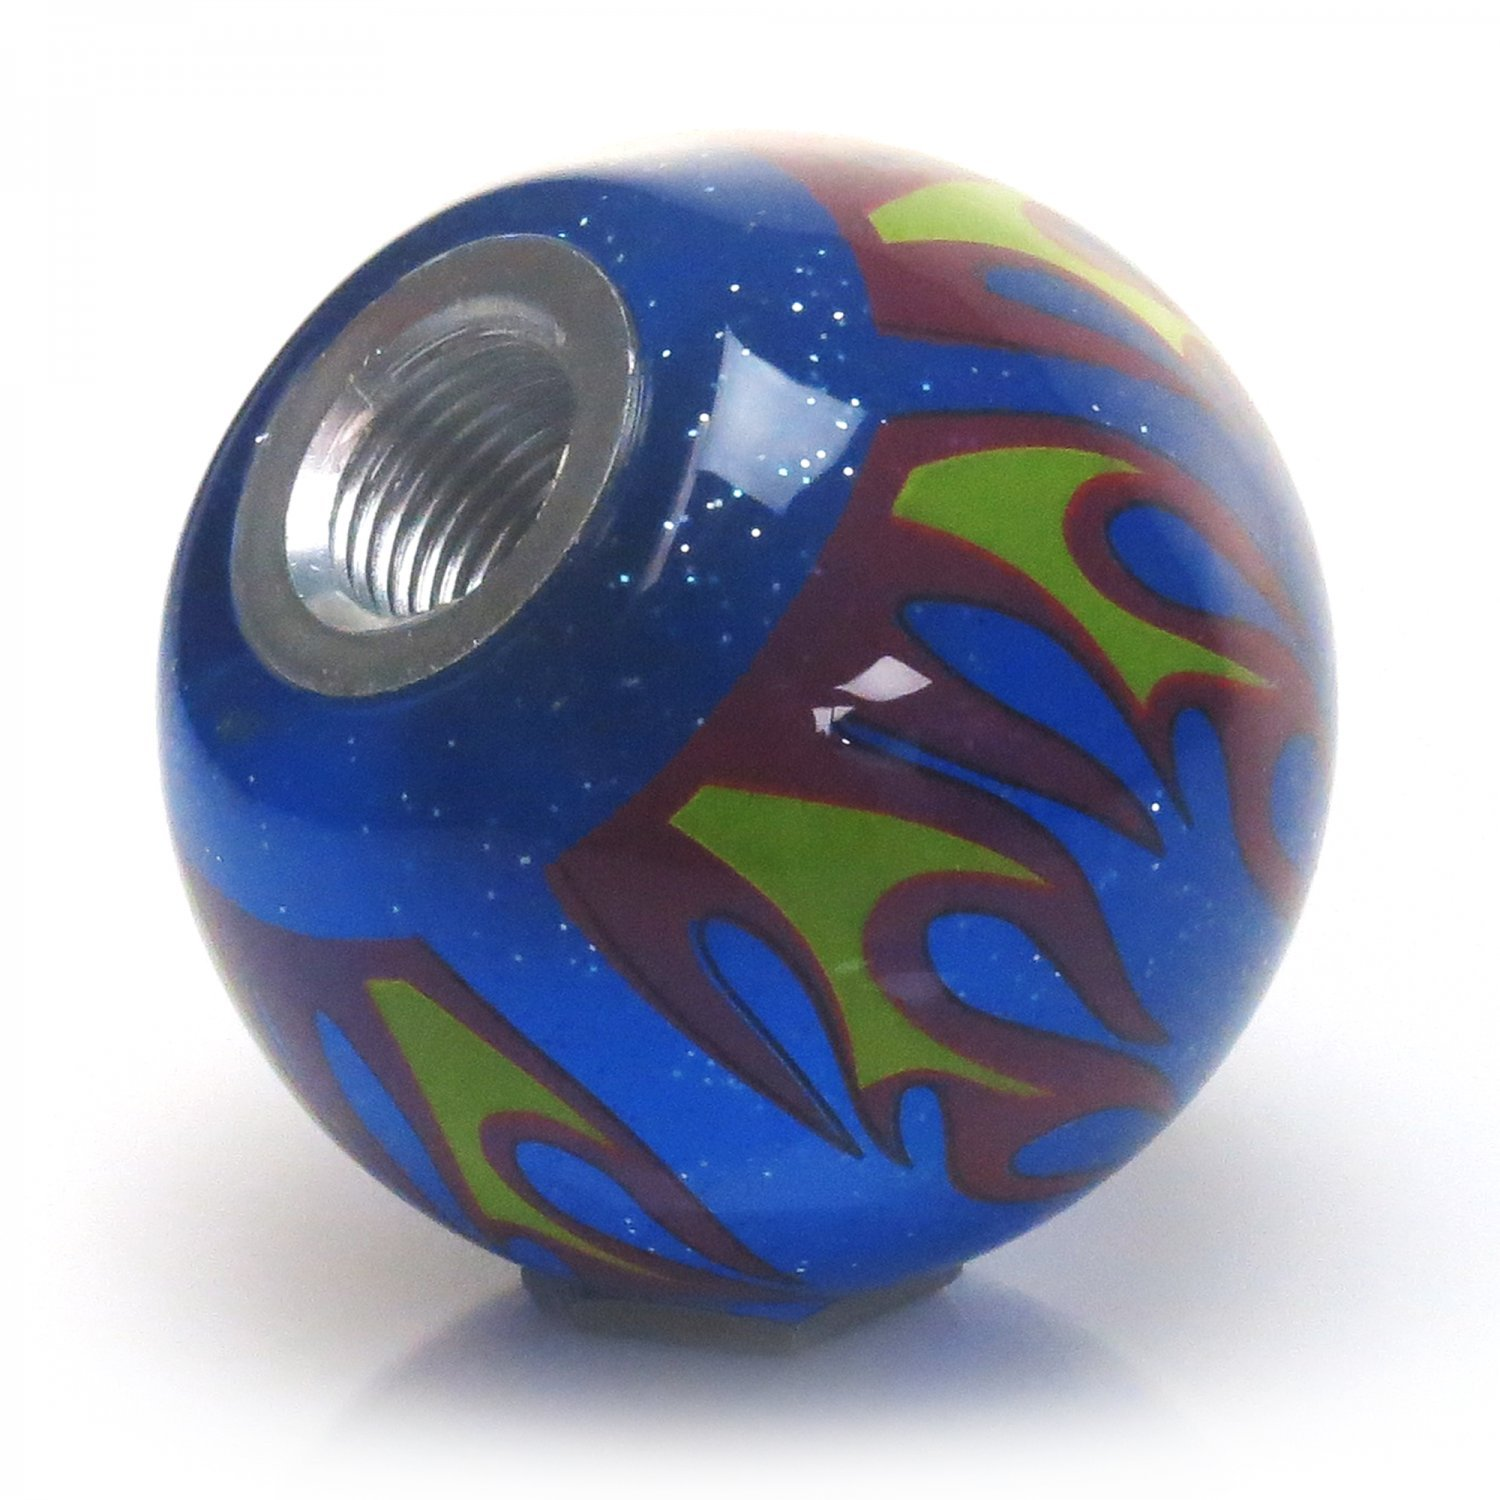 Orange Officer 09 - Lt. General American Shifter 249965 Blue Flame Metal Flake Shift Knob with M16 x 1.5 Insert